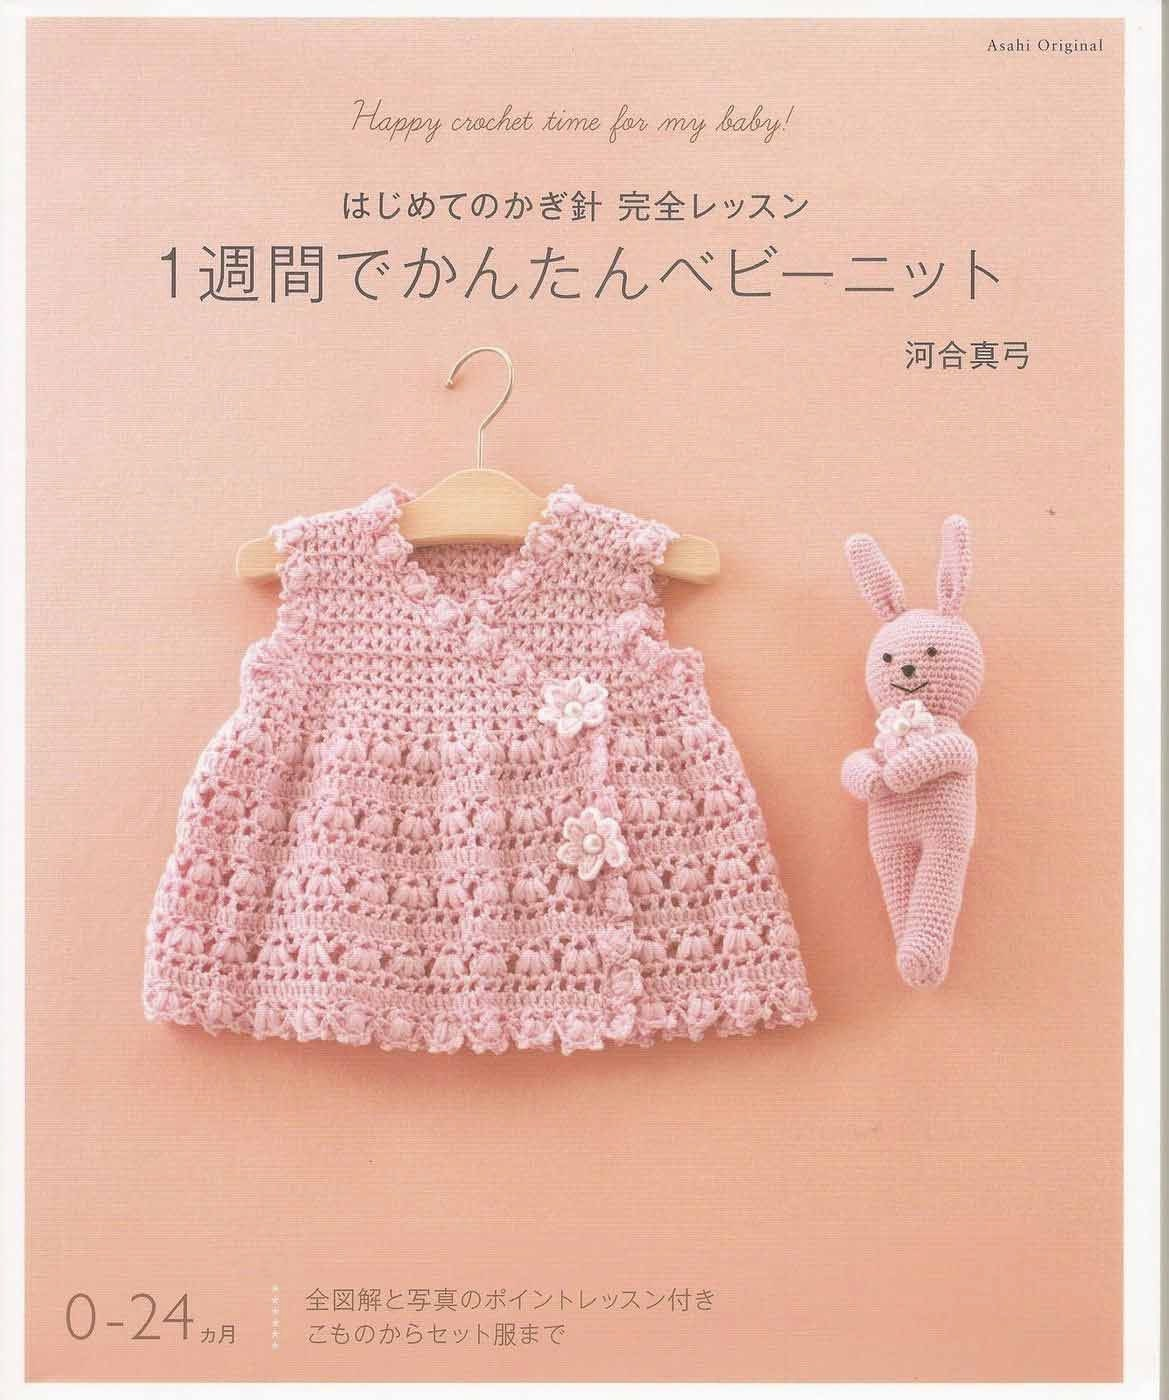 Baby crochet pattern baby crochet dress baby crochet toys zoom biocorpaavc Gallery